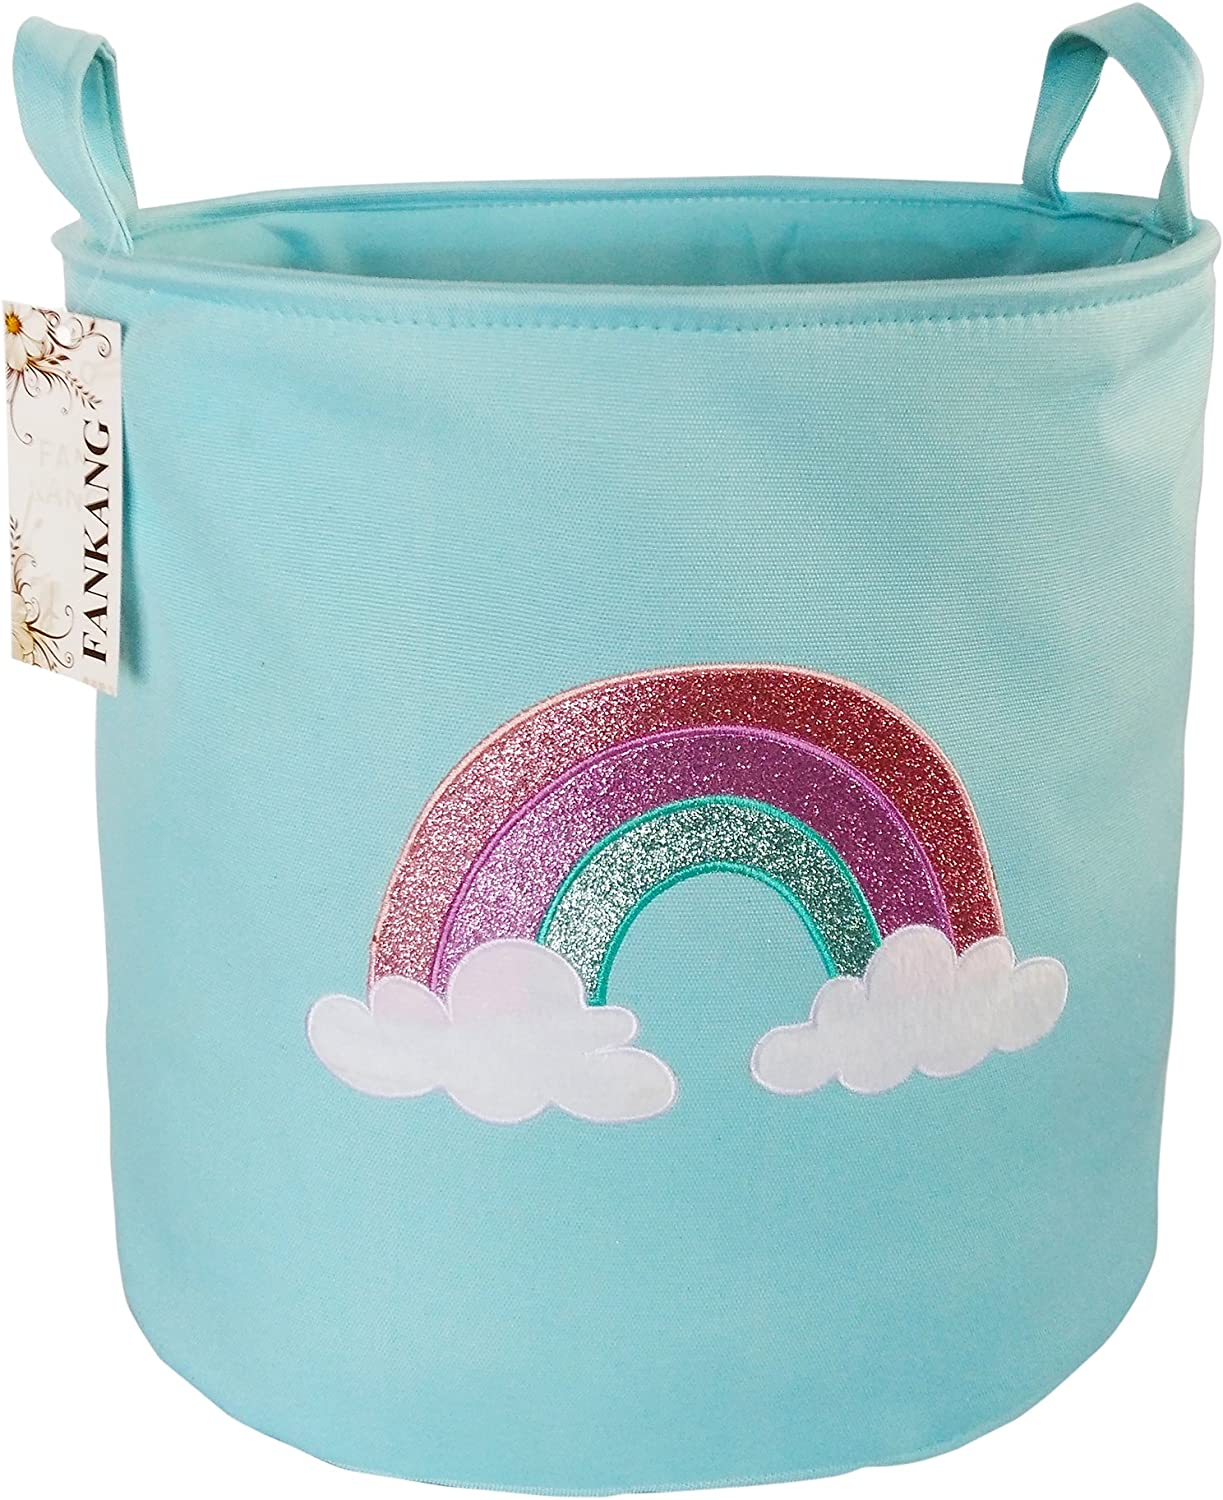 FANKANG Large Sized Gift Baskets Cute Rainbow Pattern Design Laundry Hamper Cotton Fabric Cylindric Storage Bin with Rope Handles, Decorative and Convenient for Kids Bedroom (Blue Rainbow)